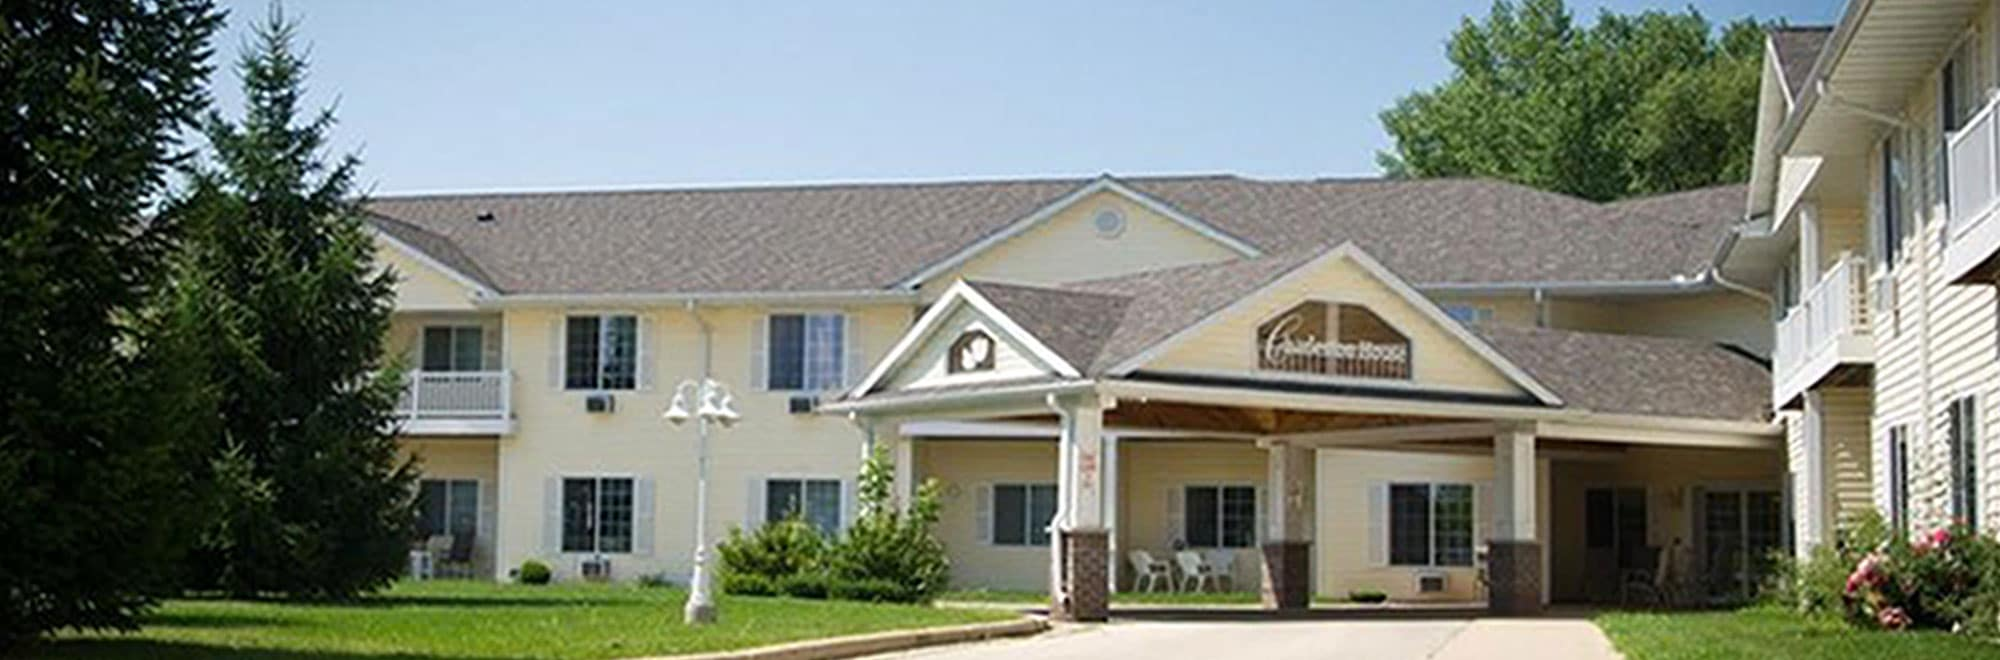 Beaver Dam Assisted Living